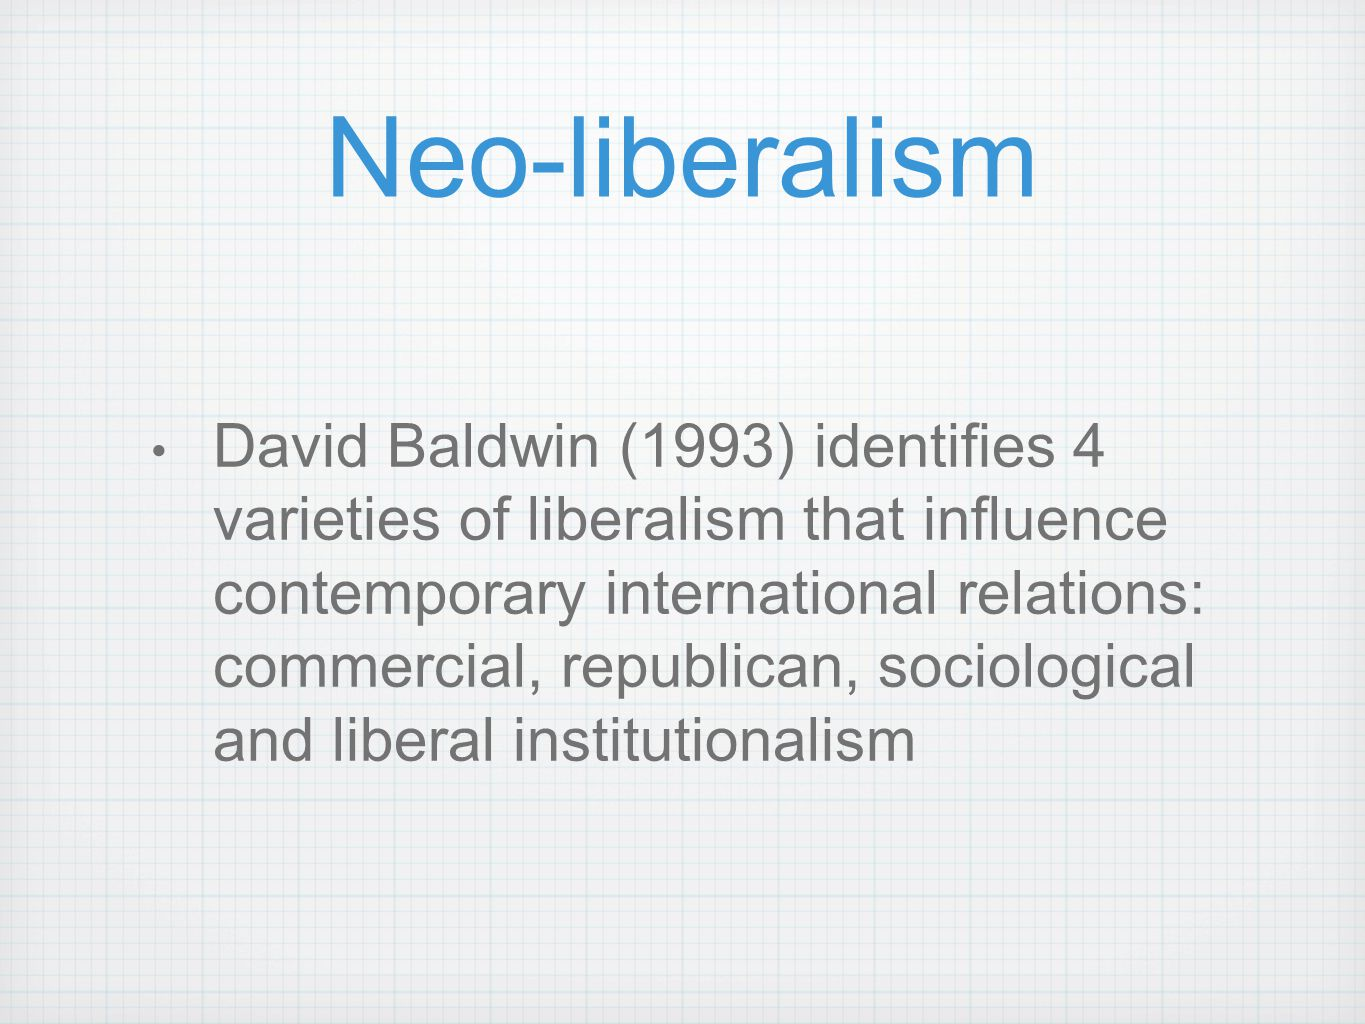 Neo-liberalism David Baldwin (1993) identifies 4 varieties of liberalism that influence contemporary international relations: commercial, republican,